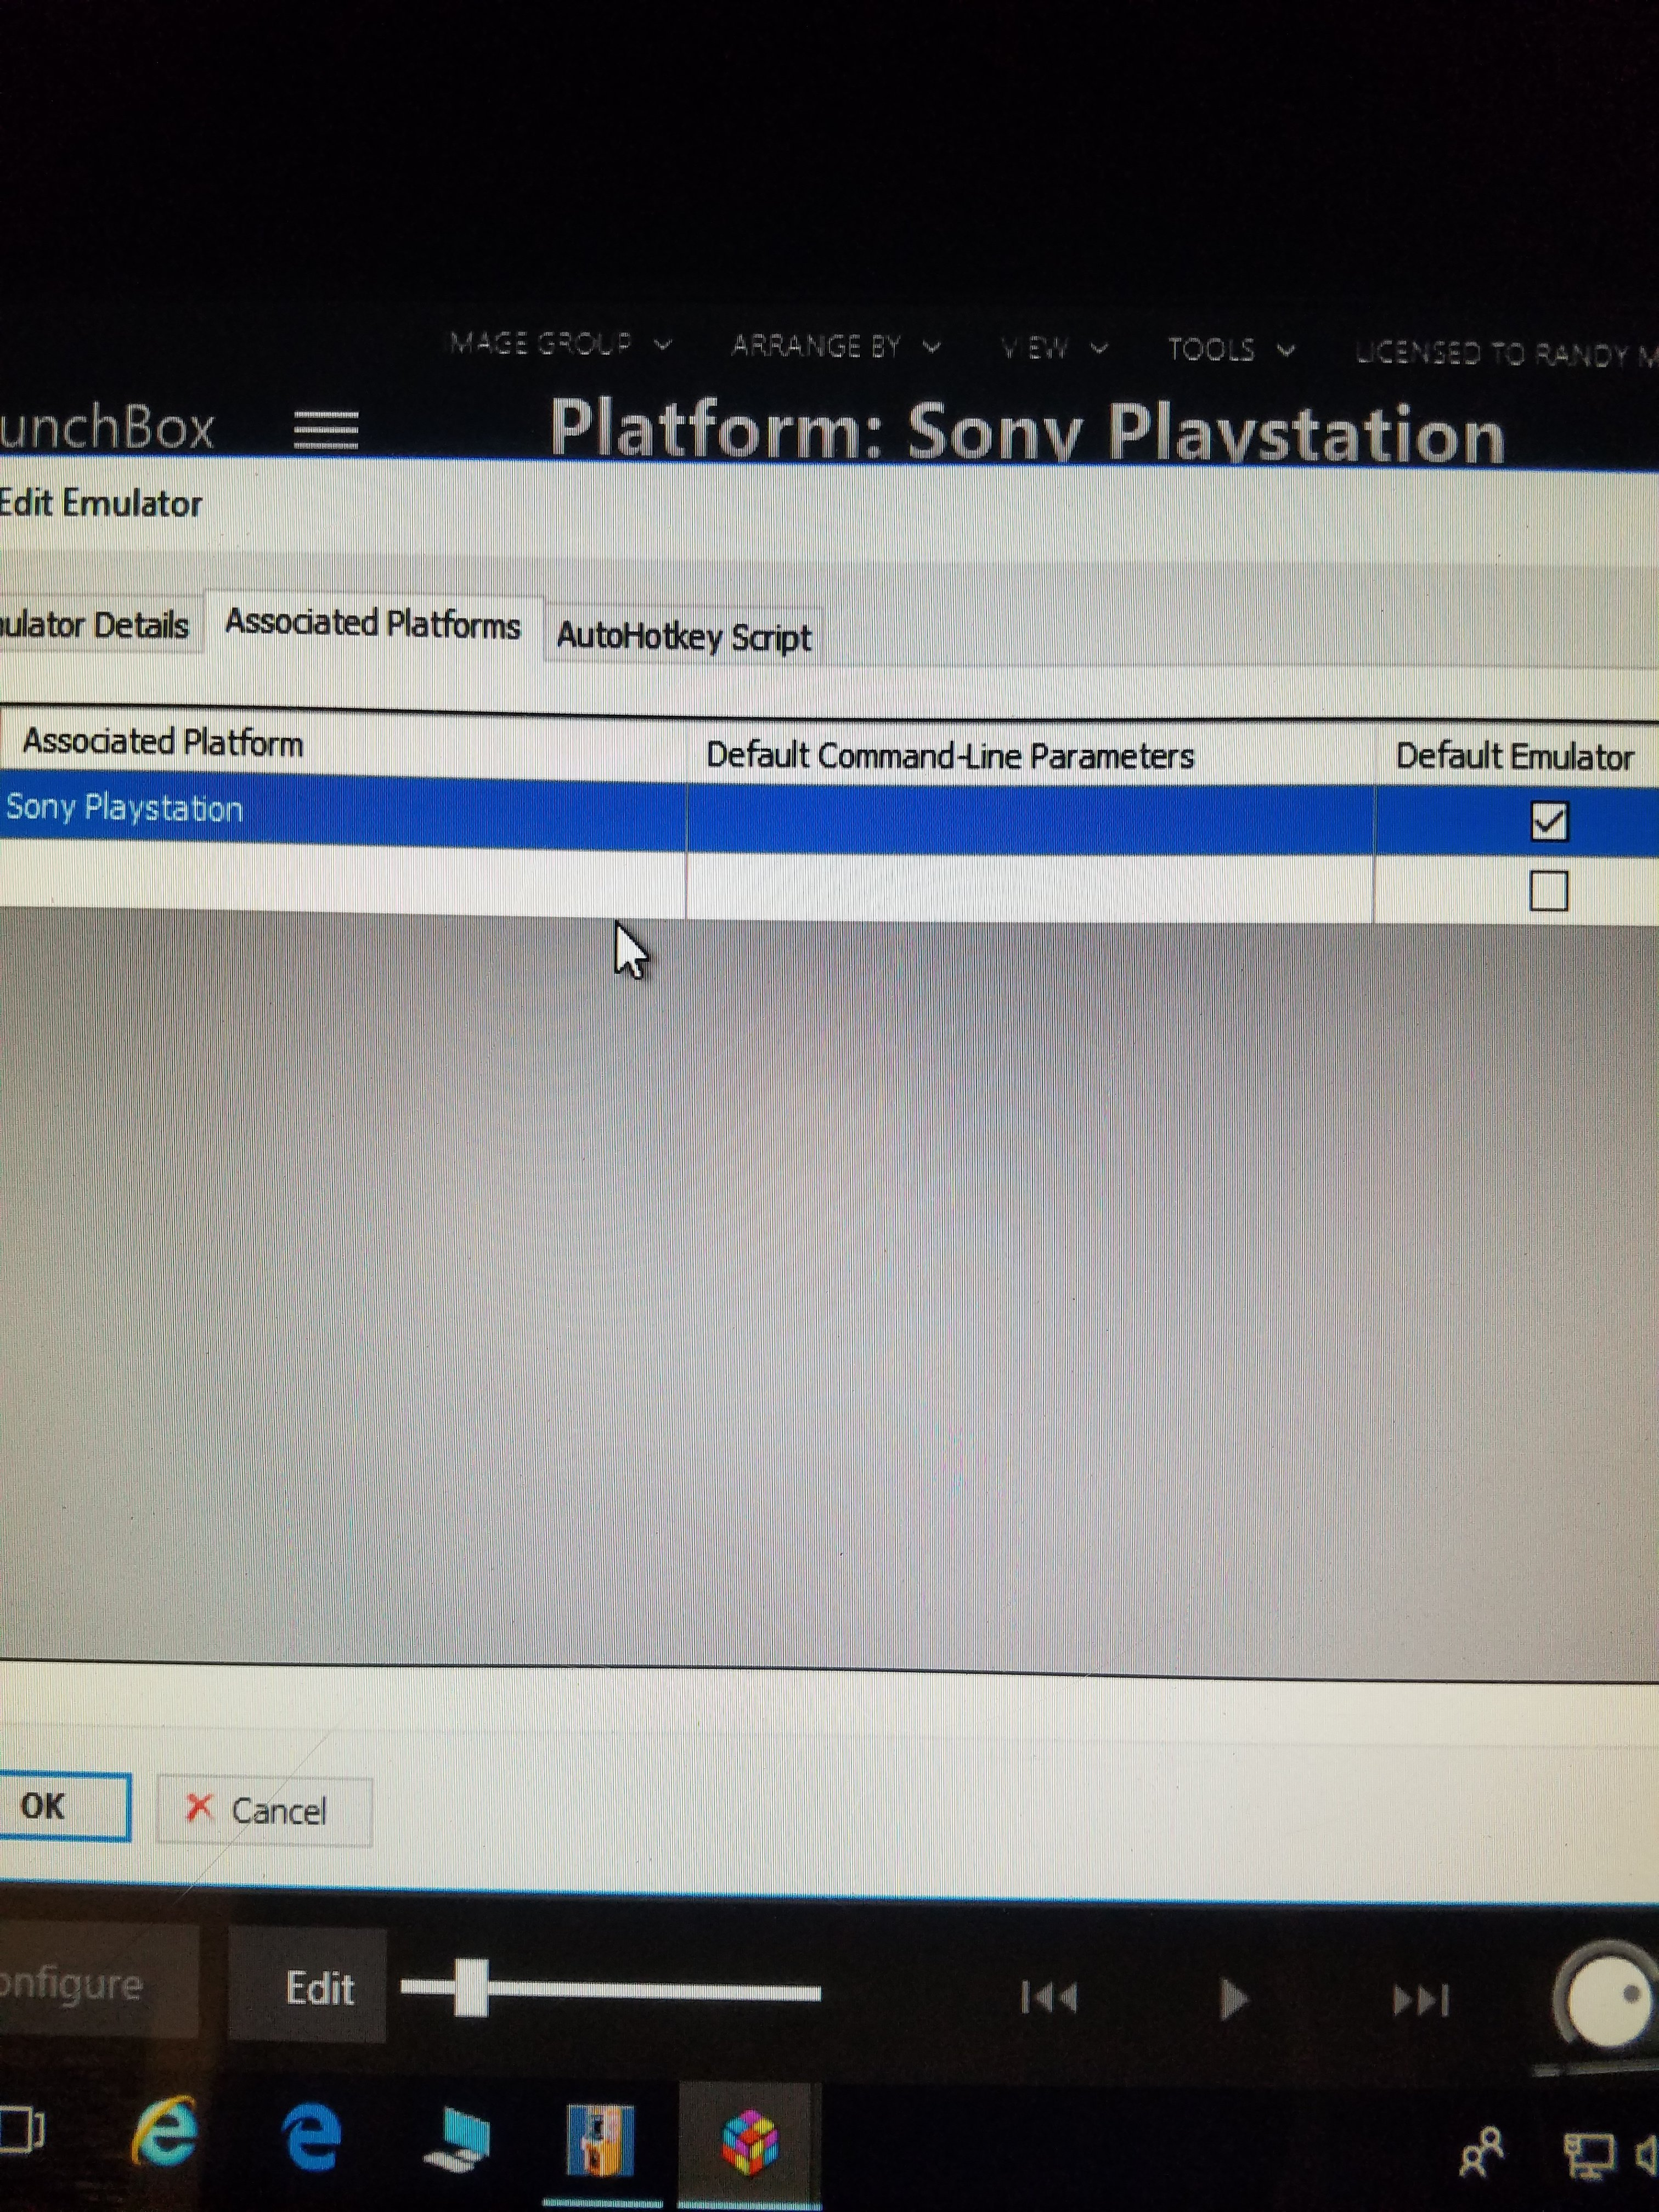 PlayStation 1 Rom not loading/working - Troubleshooting